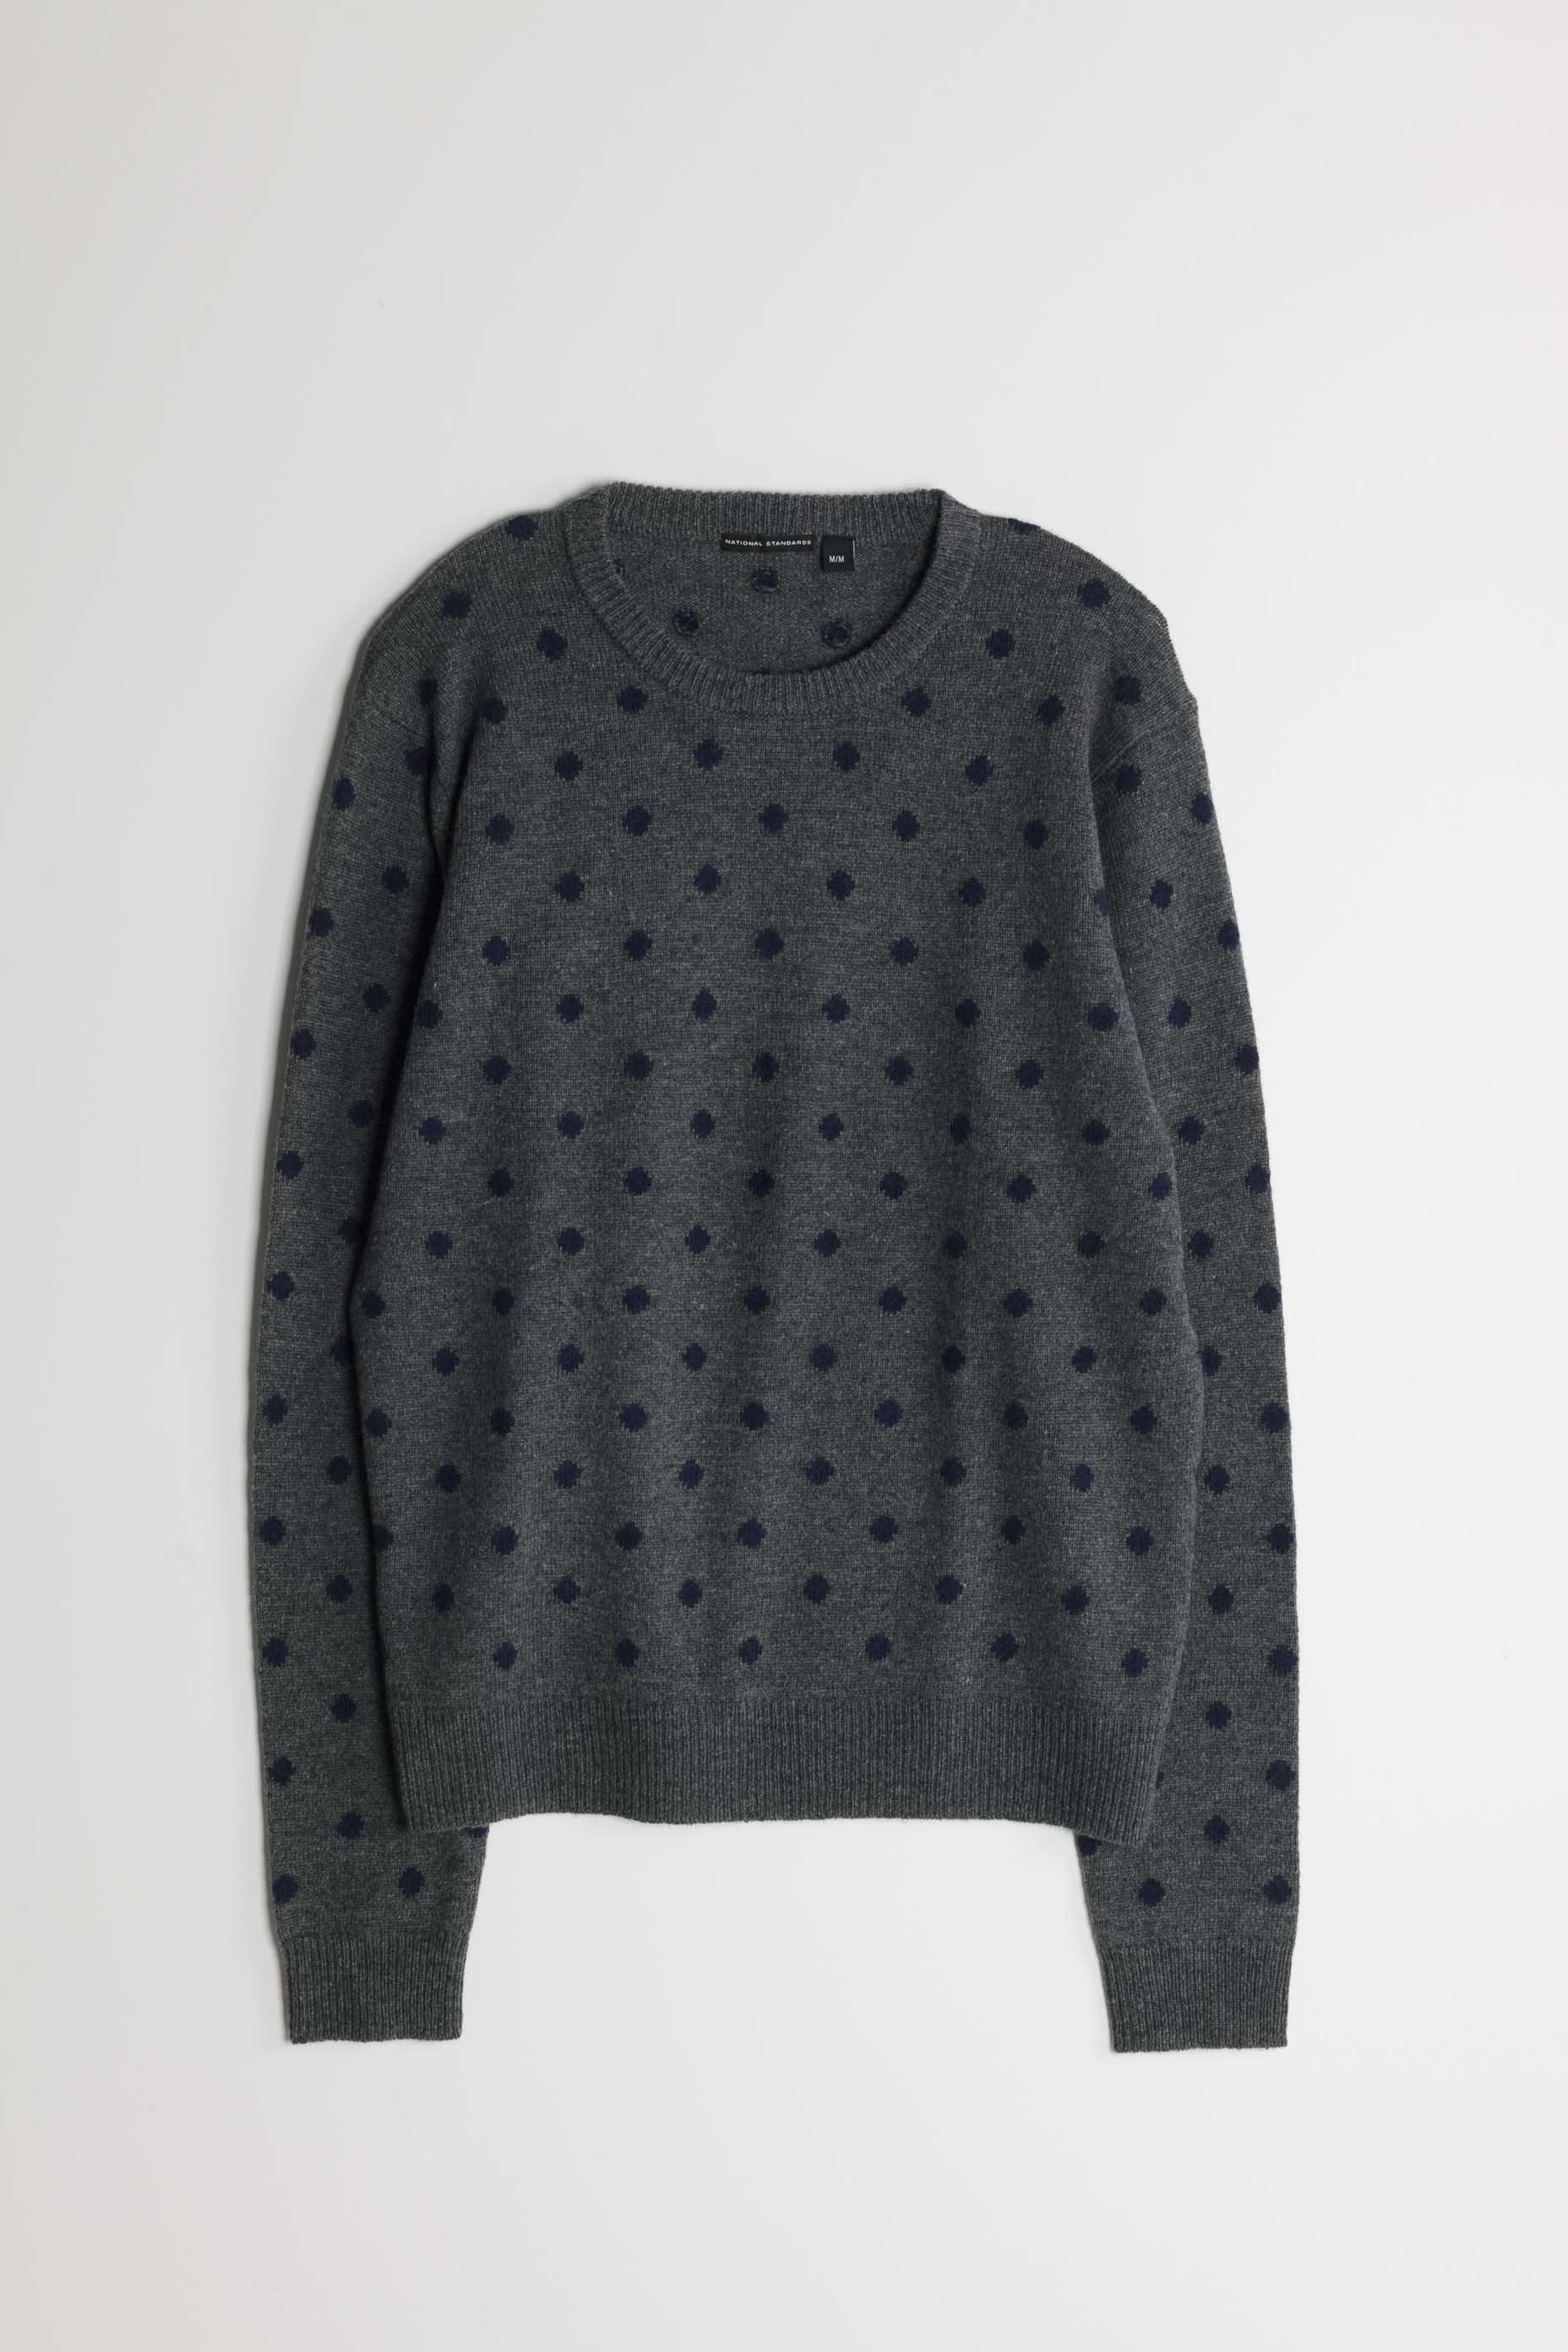 Lambswool Polka Dot Crew in Grey 01